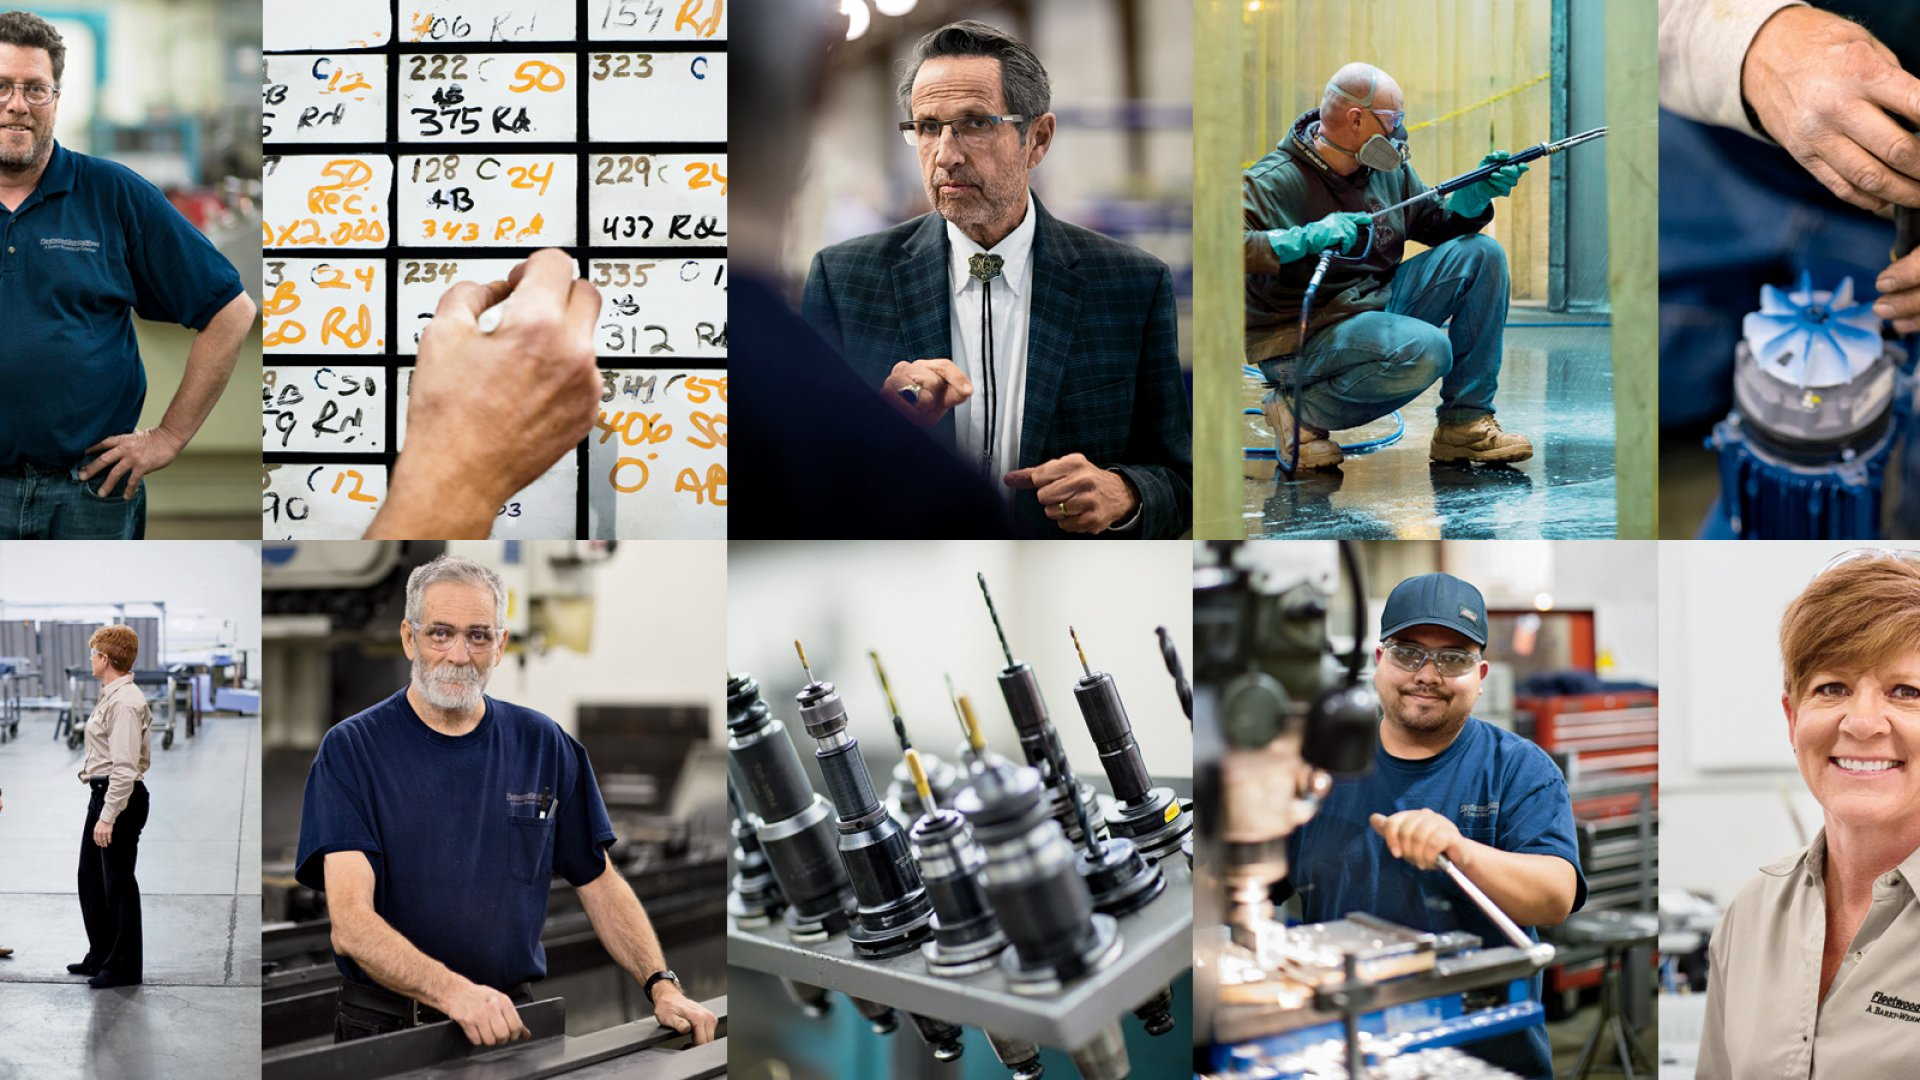 <b>Man on a mission:</b> Bob Chapman (top row, center), CEO of manufacturer Barry-Wehmiller, and the employees of the company's Loveland, Colorado factory. Chapman believes that the only bottom line that matters is how leaders treat people.